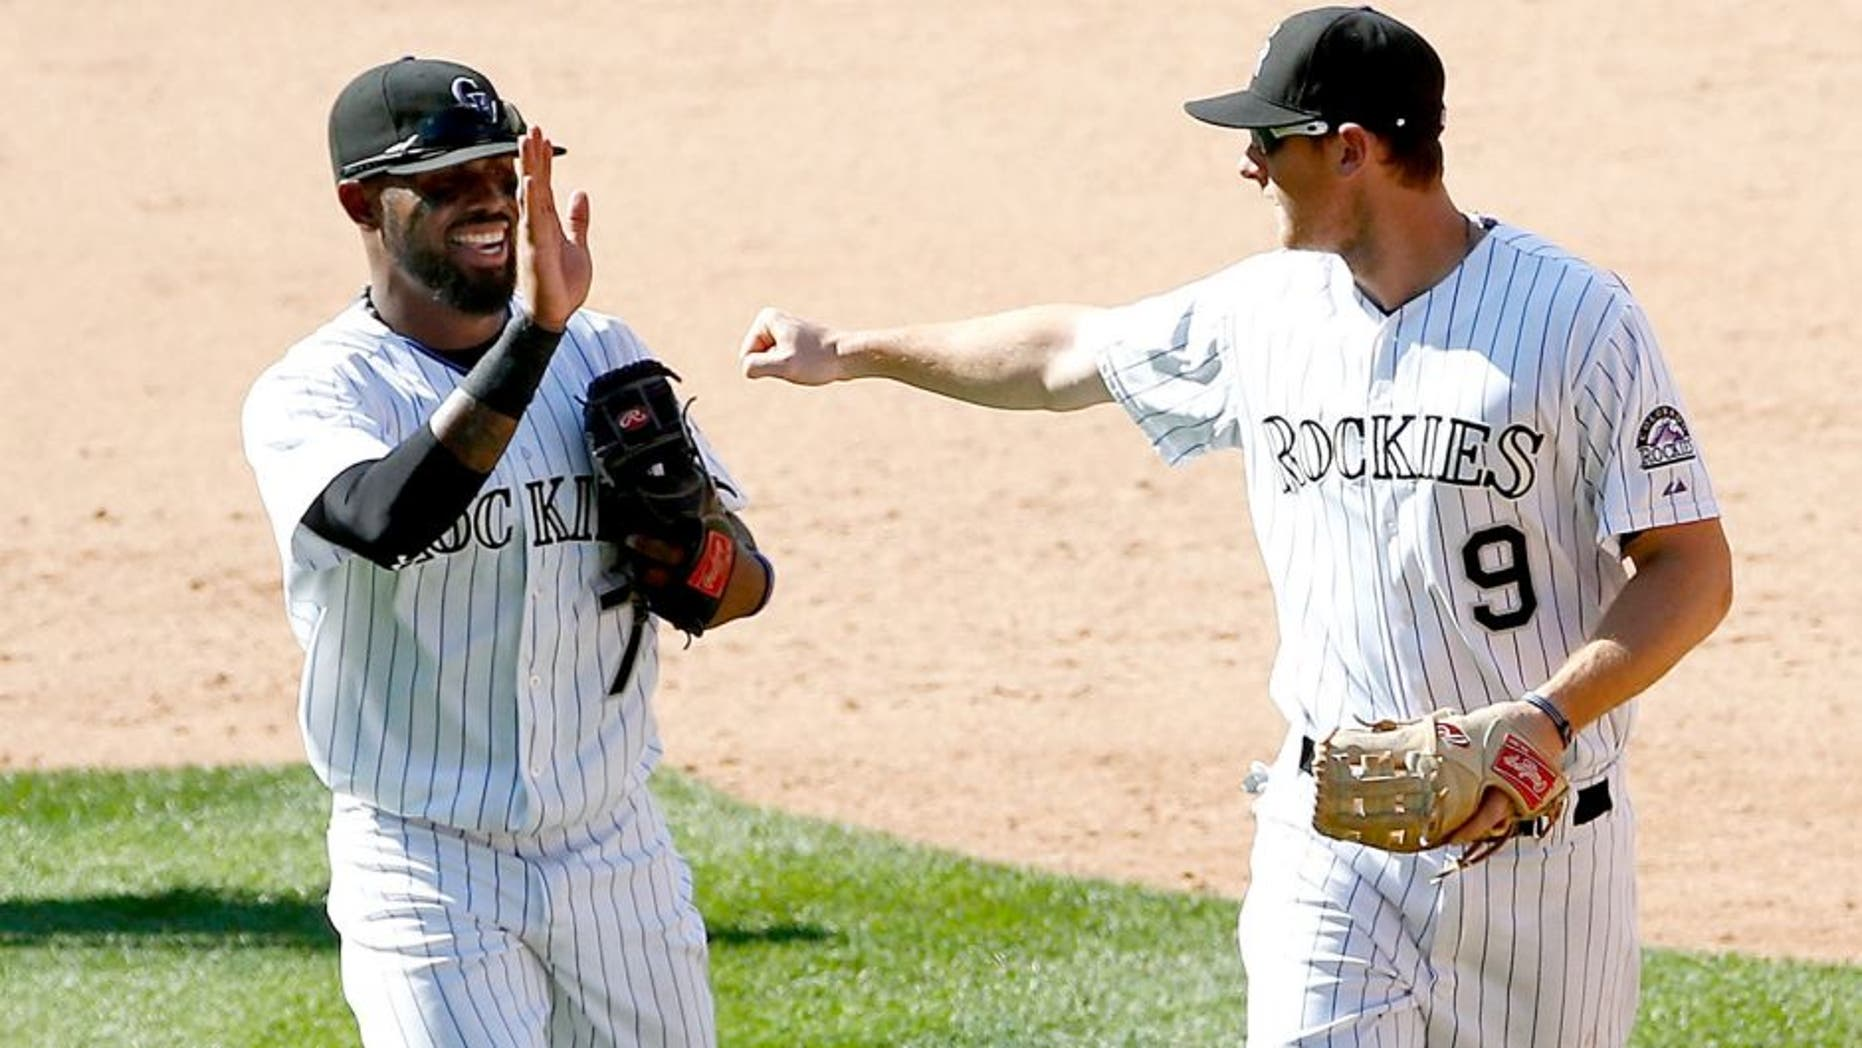 DENVER, CO - SEPTEMBER 01: Shortstop Jose Reyes #7 of the Colorado Rockies and second baseman DJ LeMahieu #9 of the Colorado Rockies celebrate after they teamed up with Ben Paulsen #10 of the Colorado Rockies for a triple play on a line drive by Paul Goldschmidt #44 of the Arizona Diamondbacks in the ninth inning at Coors Field on September 1, 2015 in Denver, Colorado. The Diamondbacks defeated the Rockies 6-4. (Photo by Doug Pensinger/Getty Images)